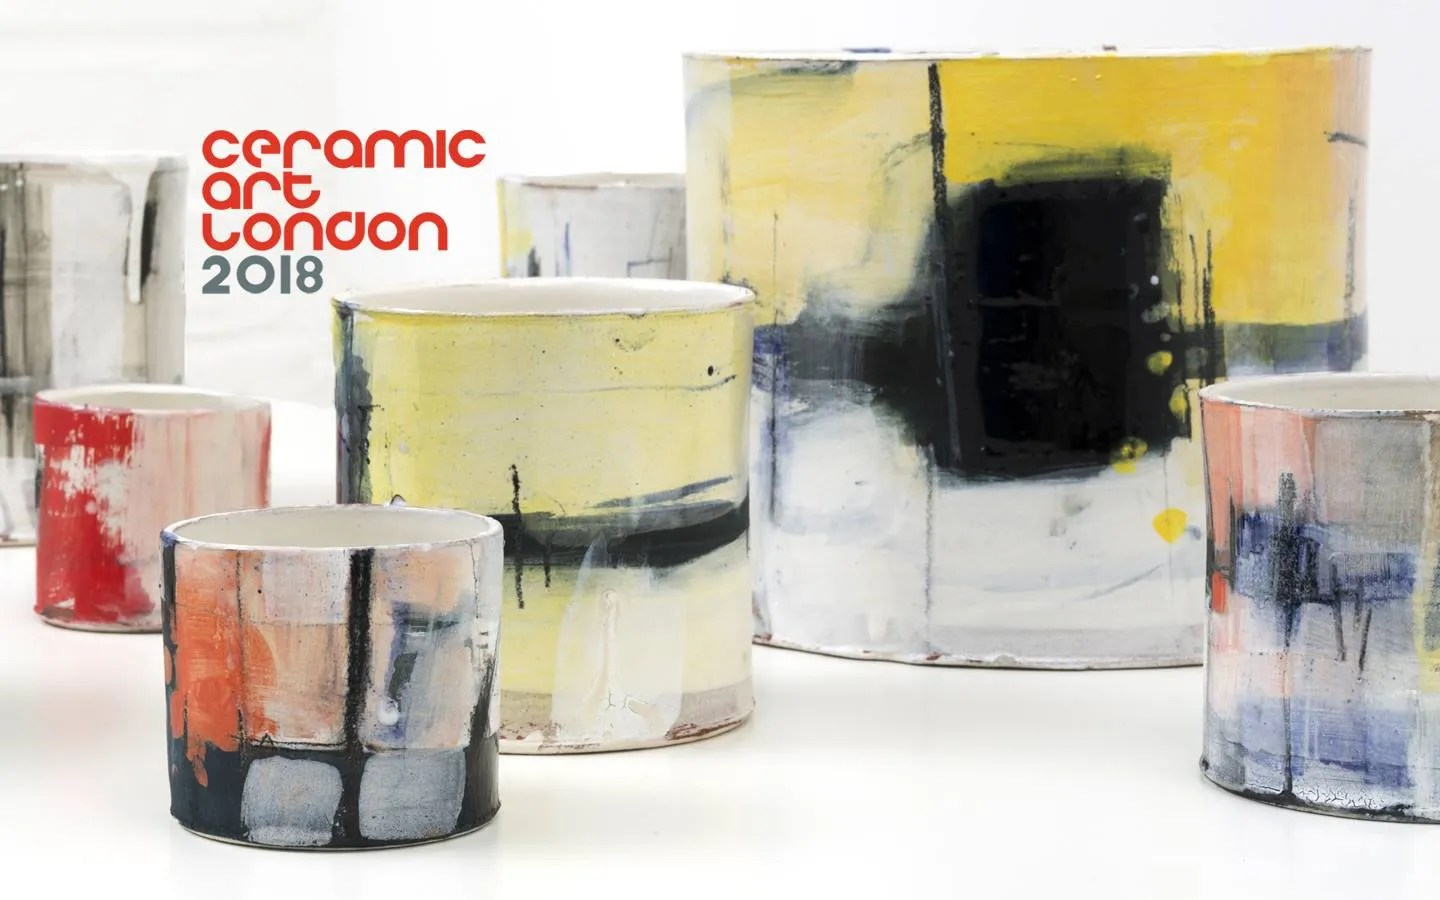 CERAMIC ART LONDON 2018